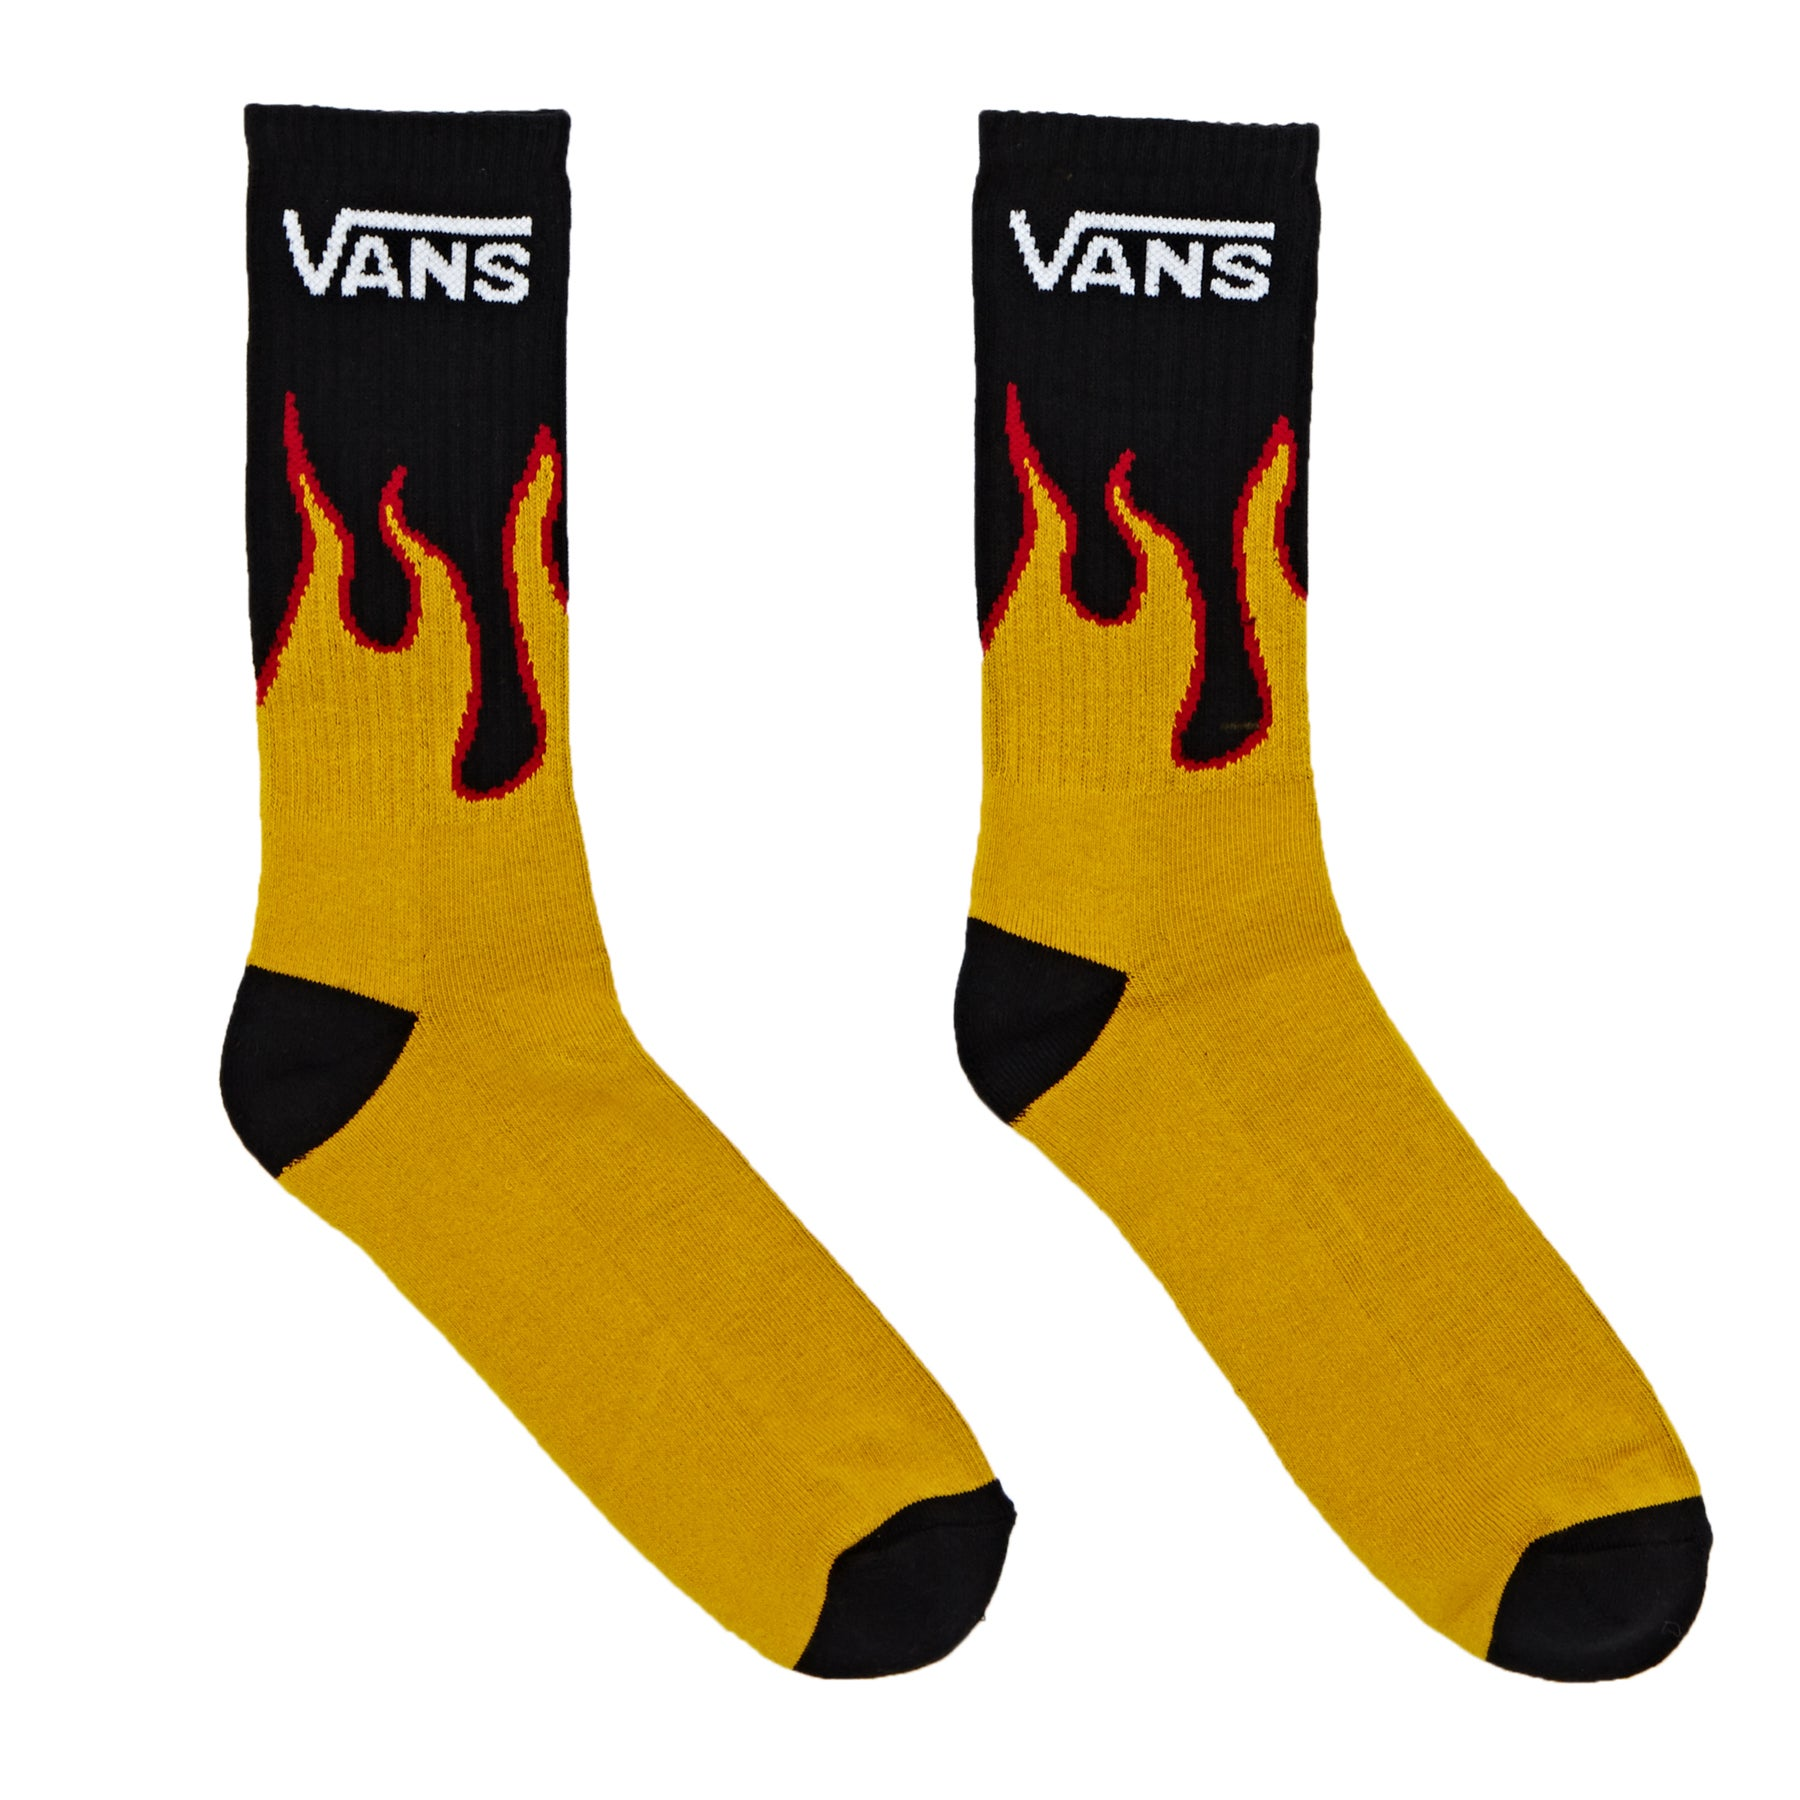 Vans Flames Crew 1 Pack Socks available from Surfdome